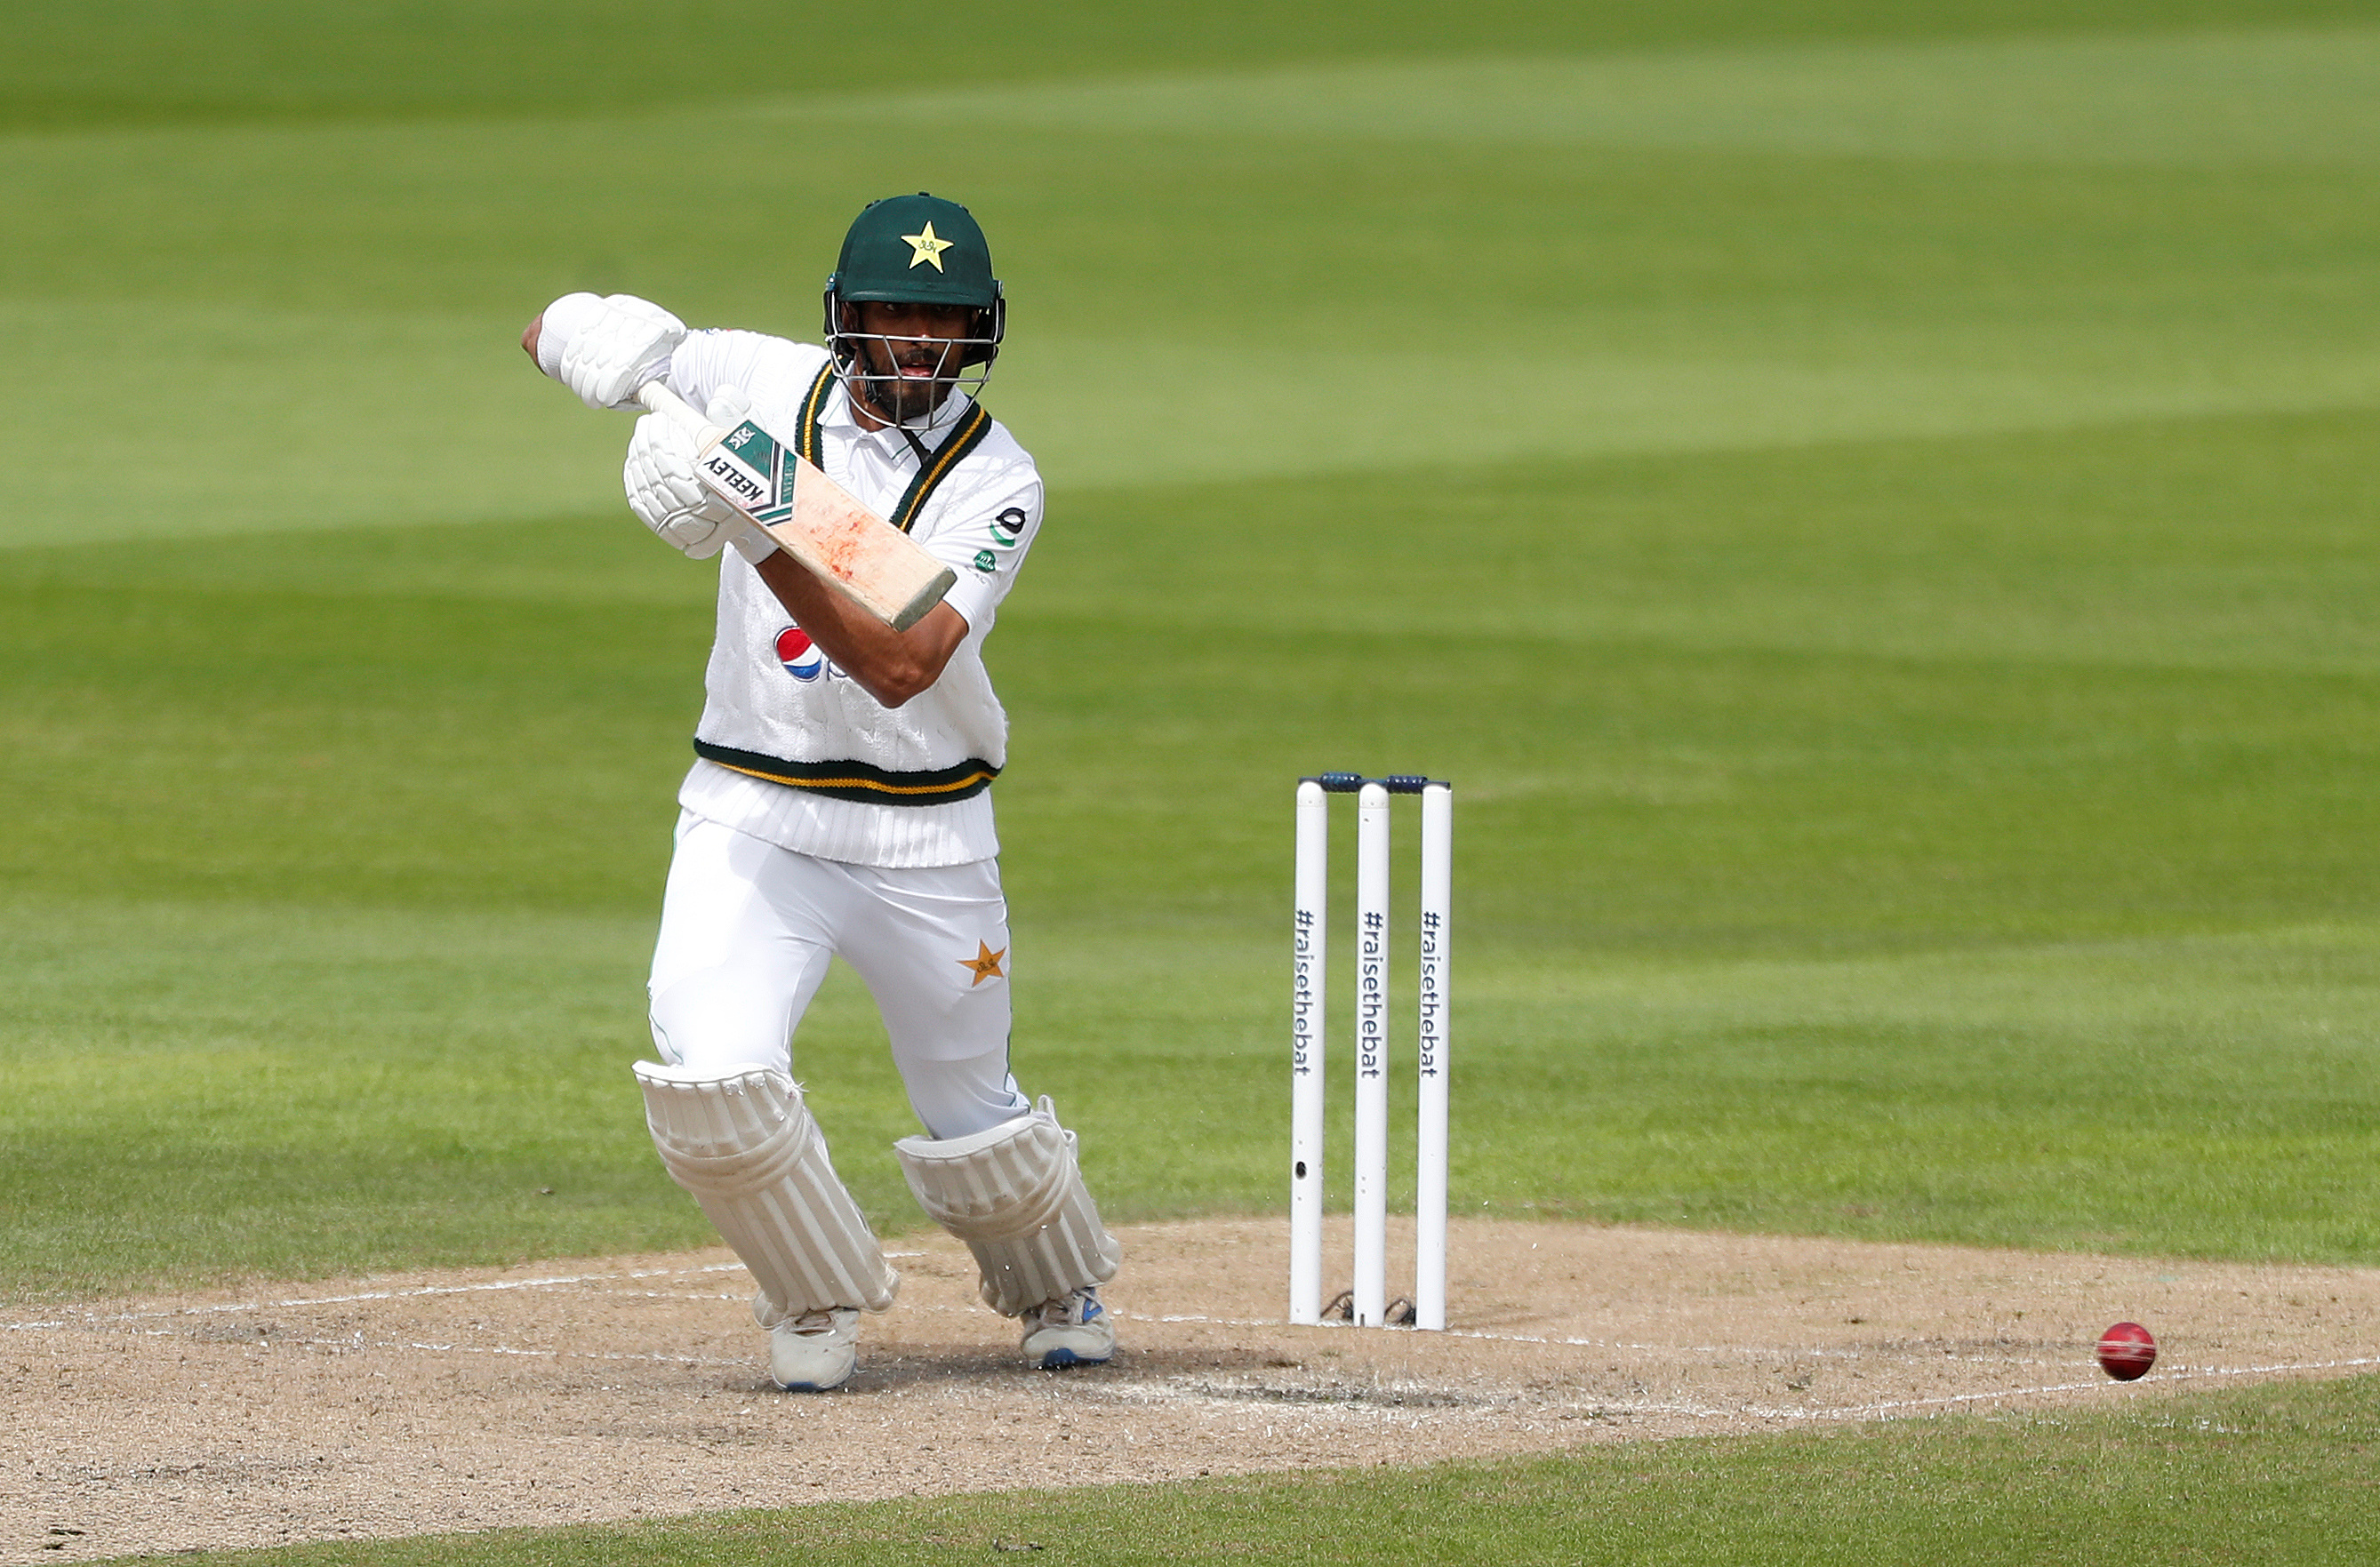 Pakistan's Shan Masood in action, as play resumes behind closed doors following the outbreak of the coronavirus disease (COVID-19). Photo: Reuters